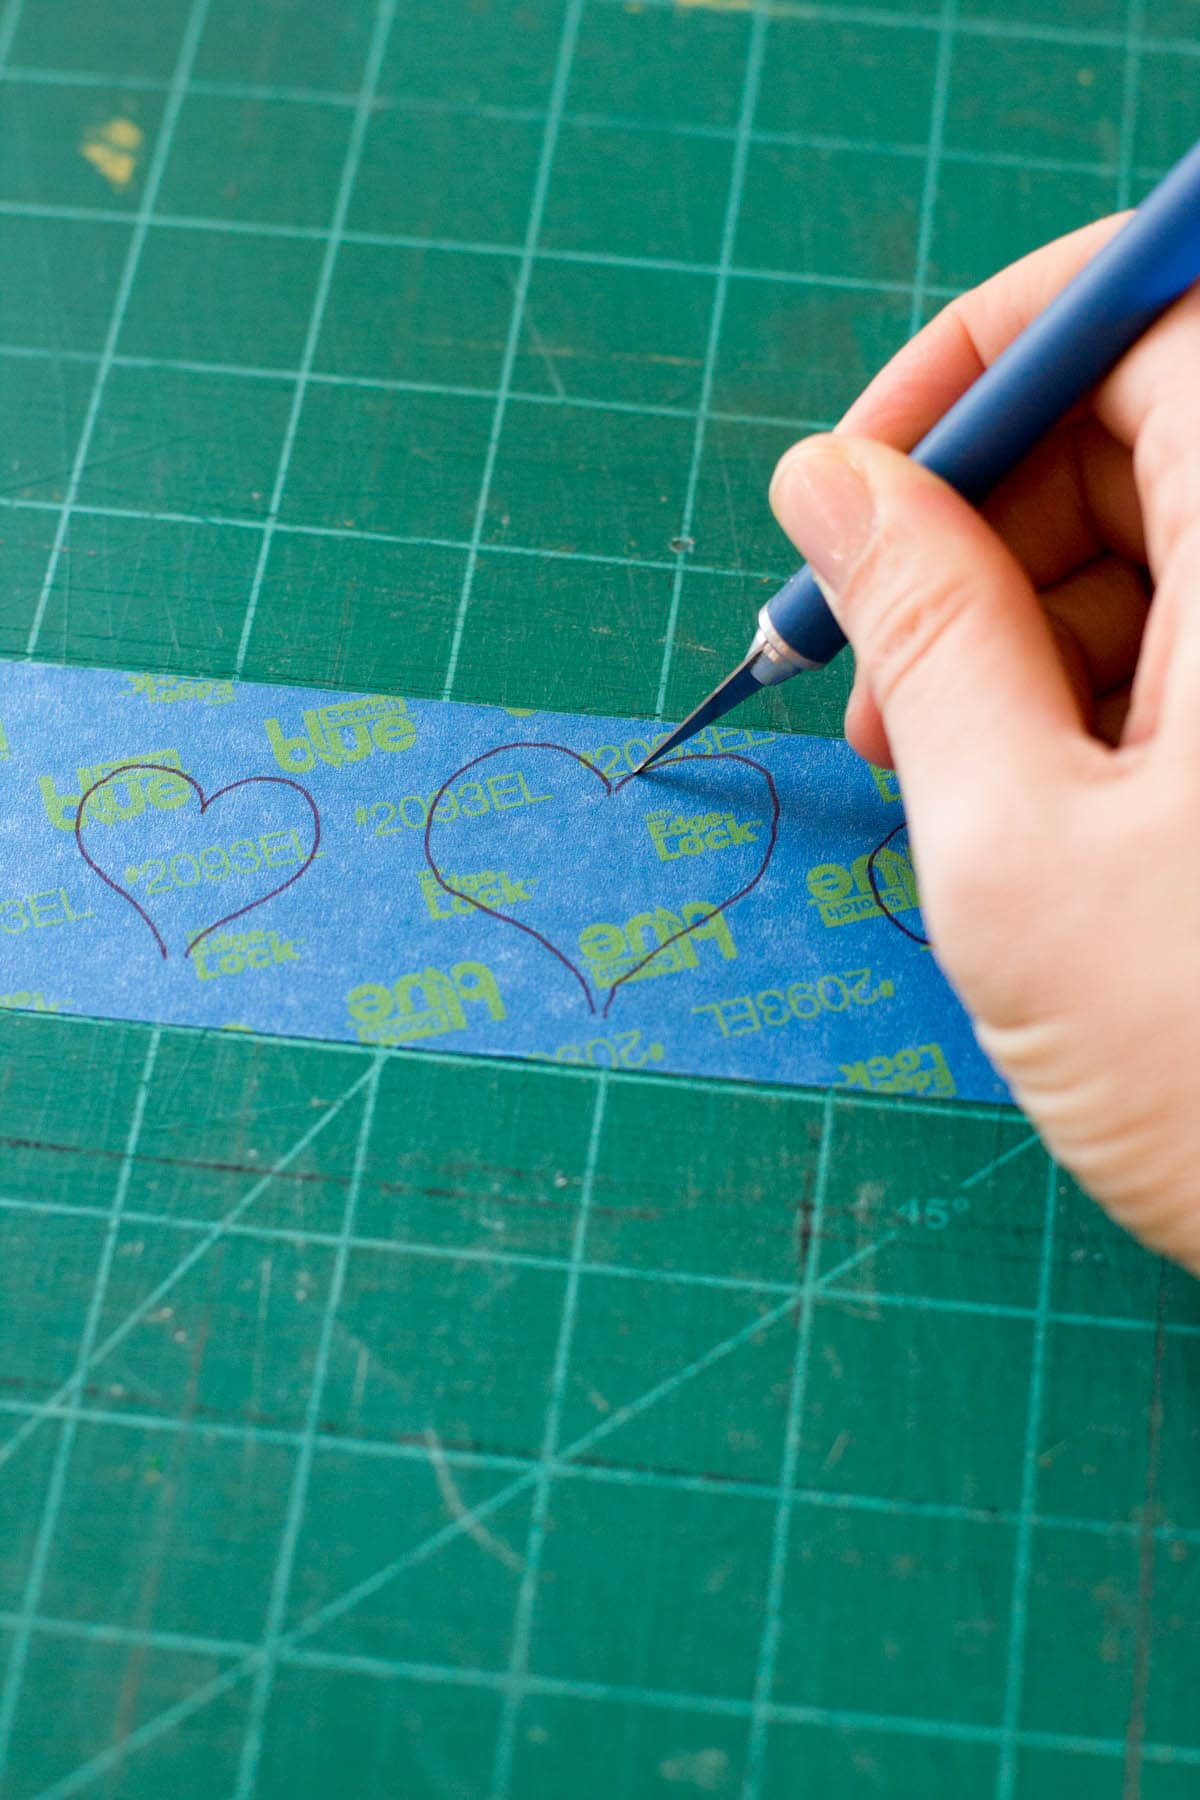 Hand using a craft knife to cut out hearts on a piece of painter's tape